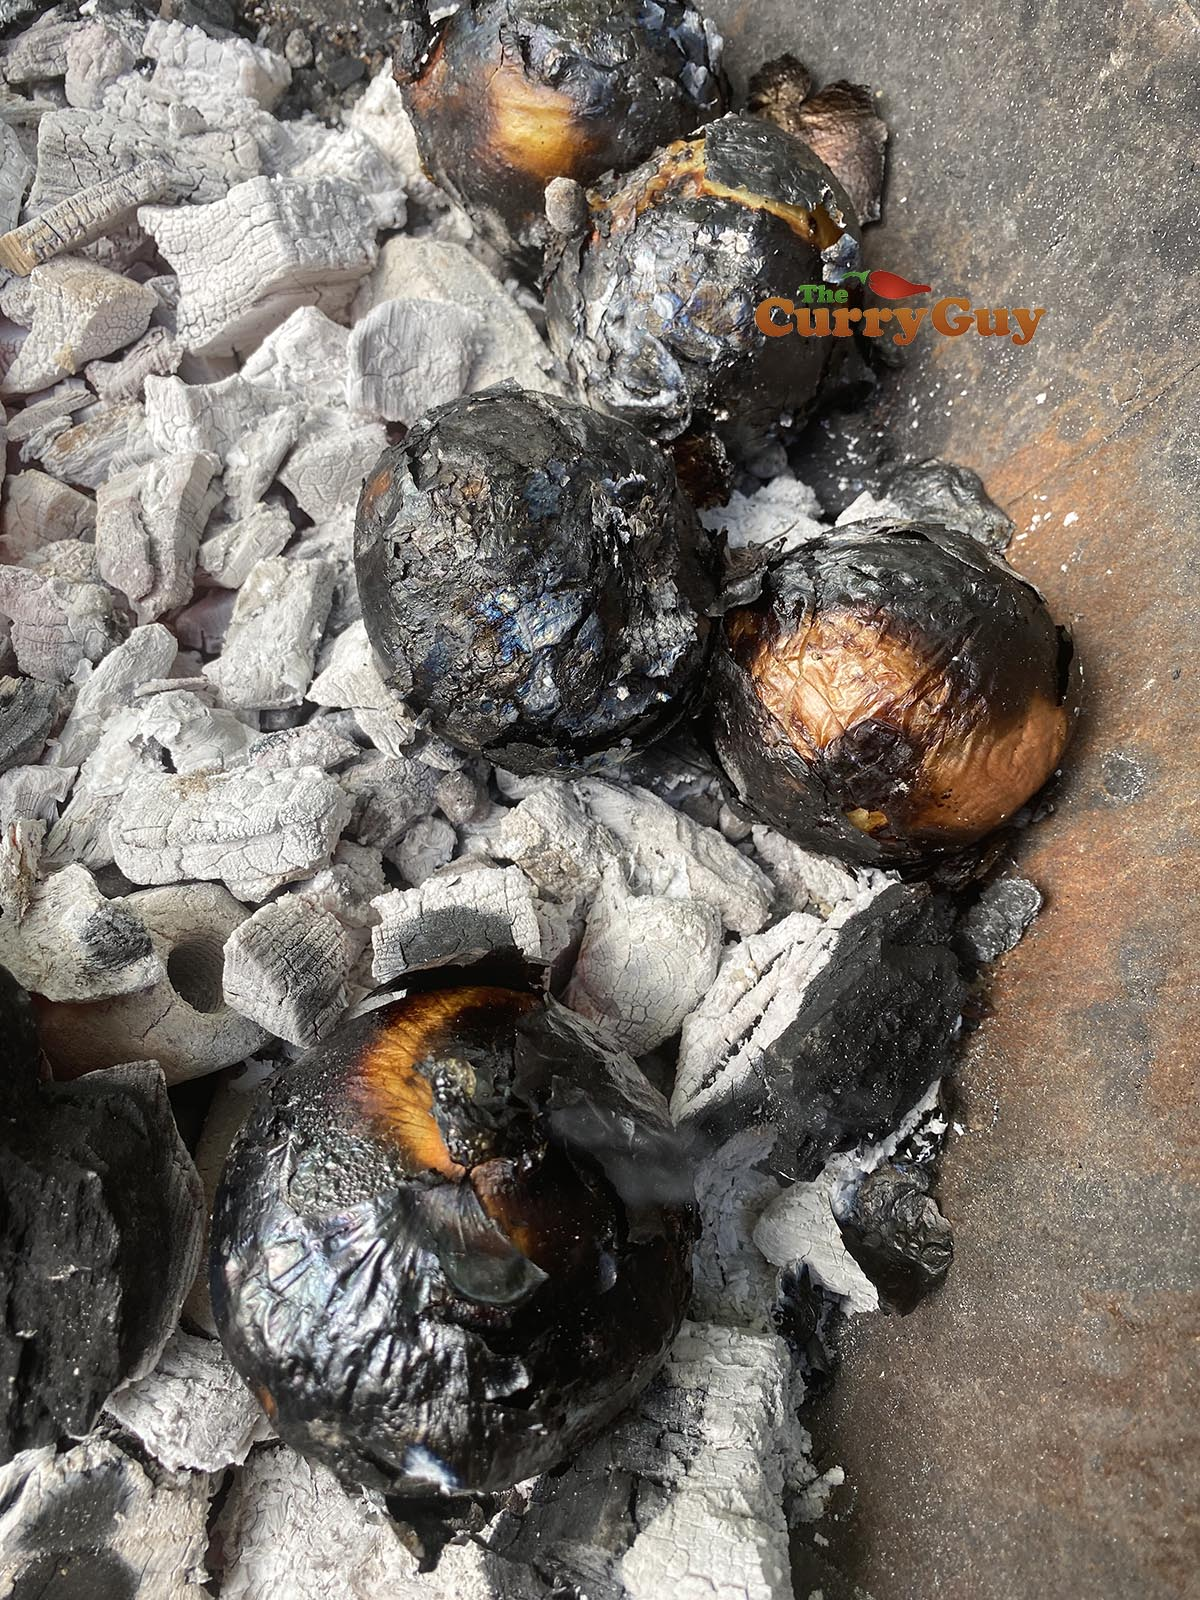 Onions cooking in embers